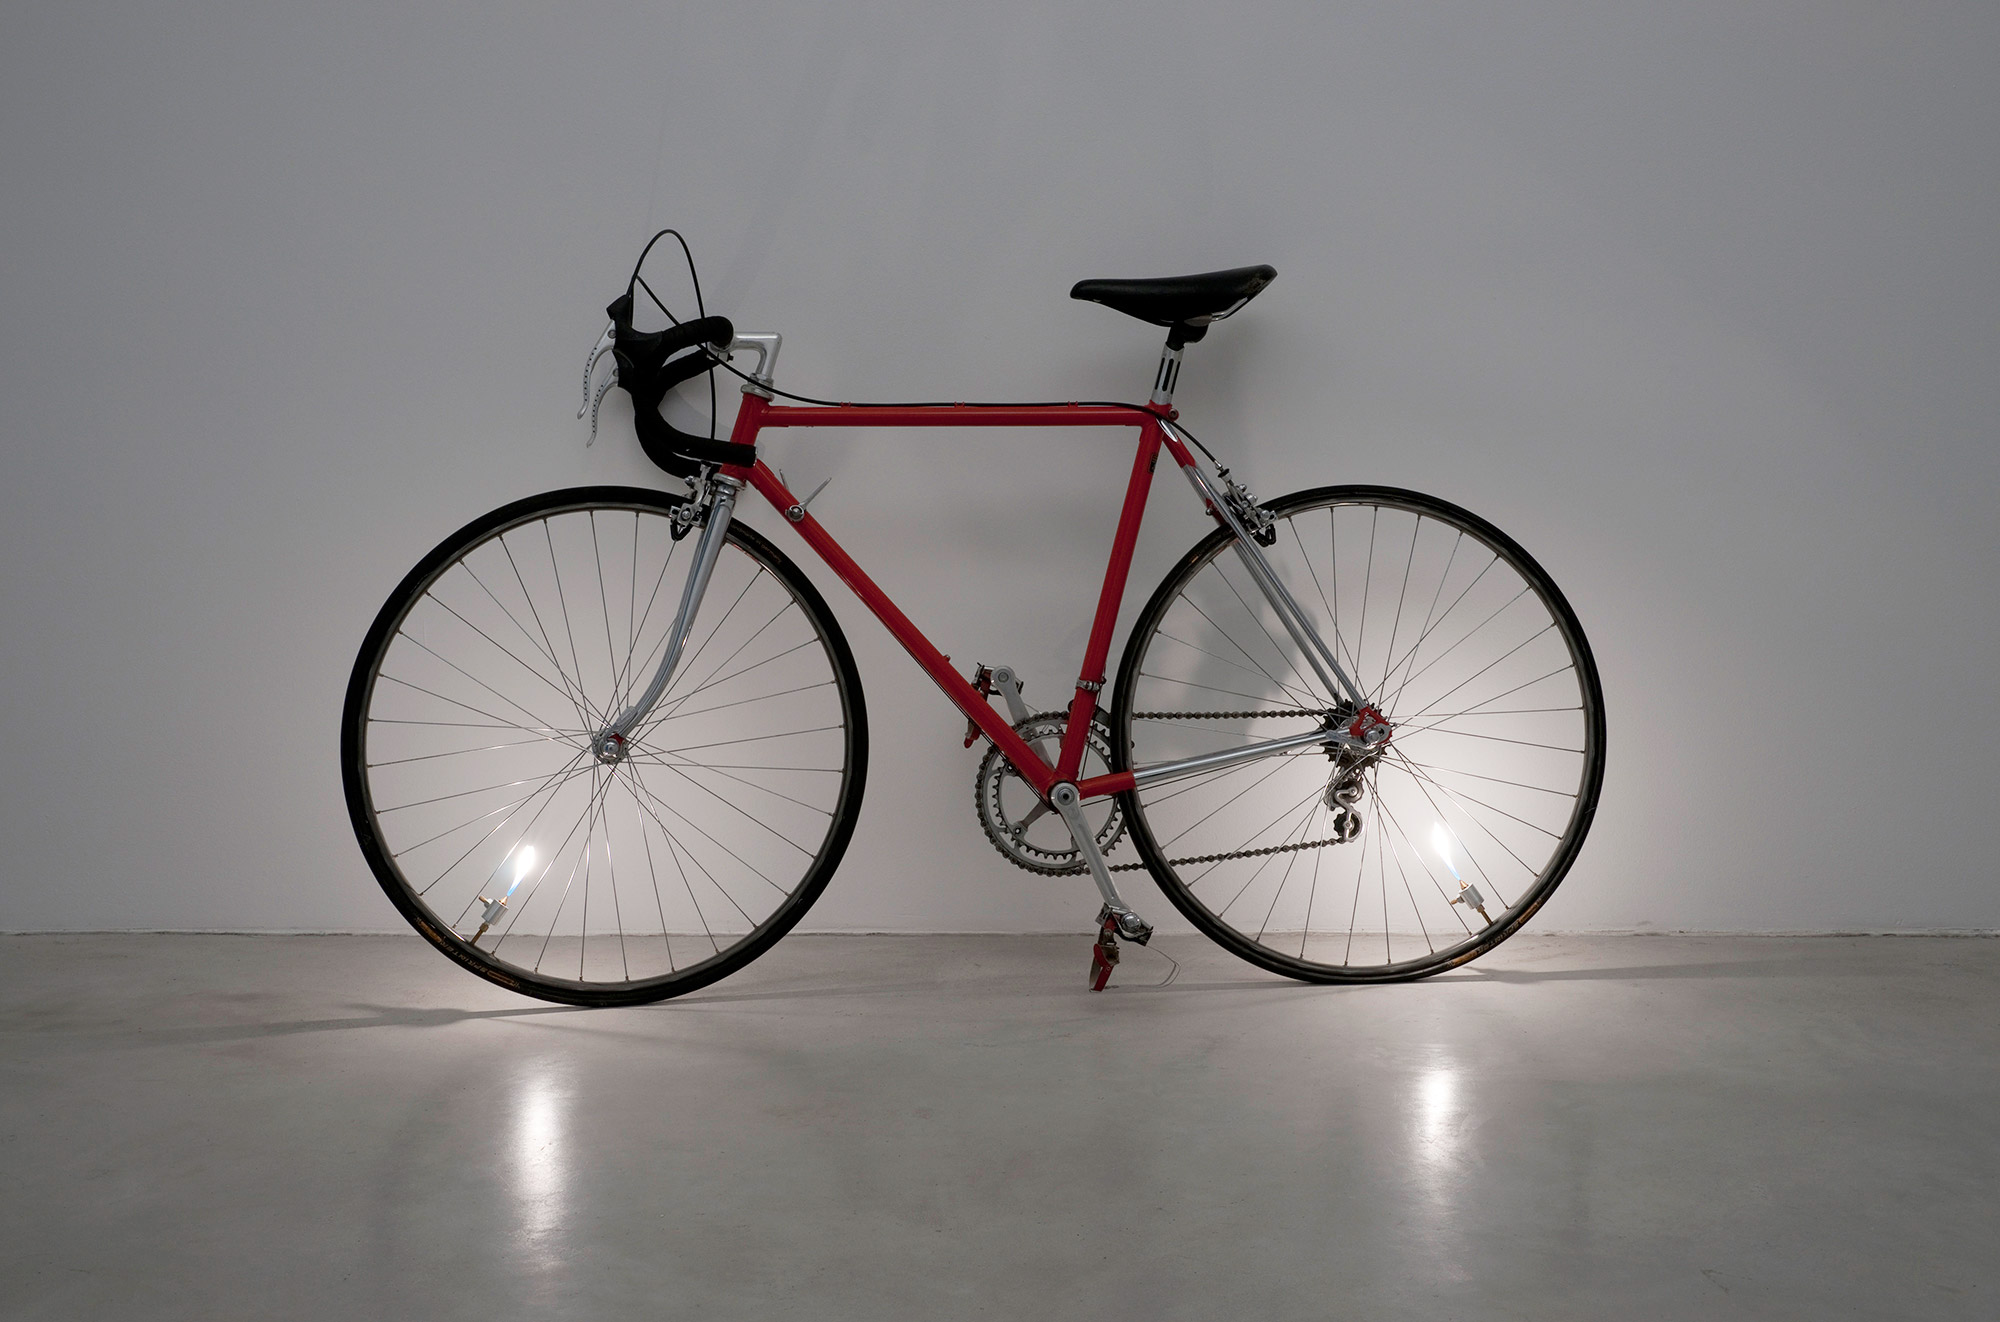 Untitled (bicycle piece), bicycle, cooking gas, valves, 180 x 92 x 33 cm, 2008. Photo: Marcus Schneider